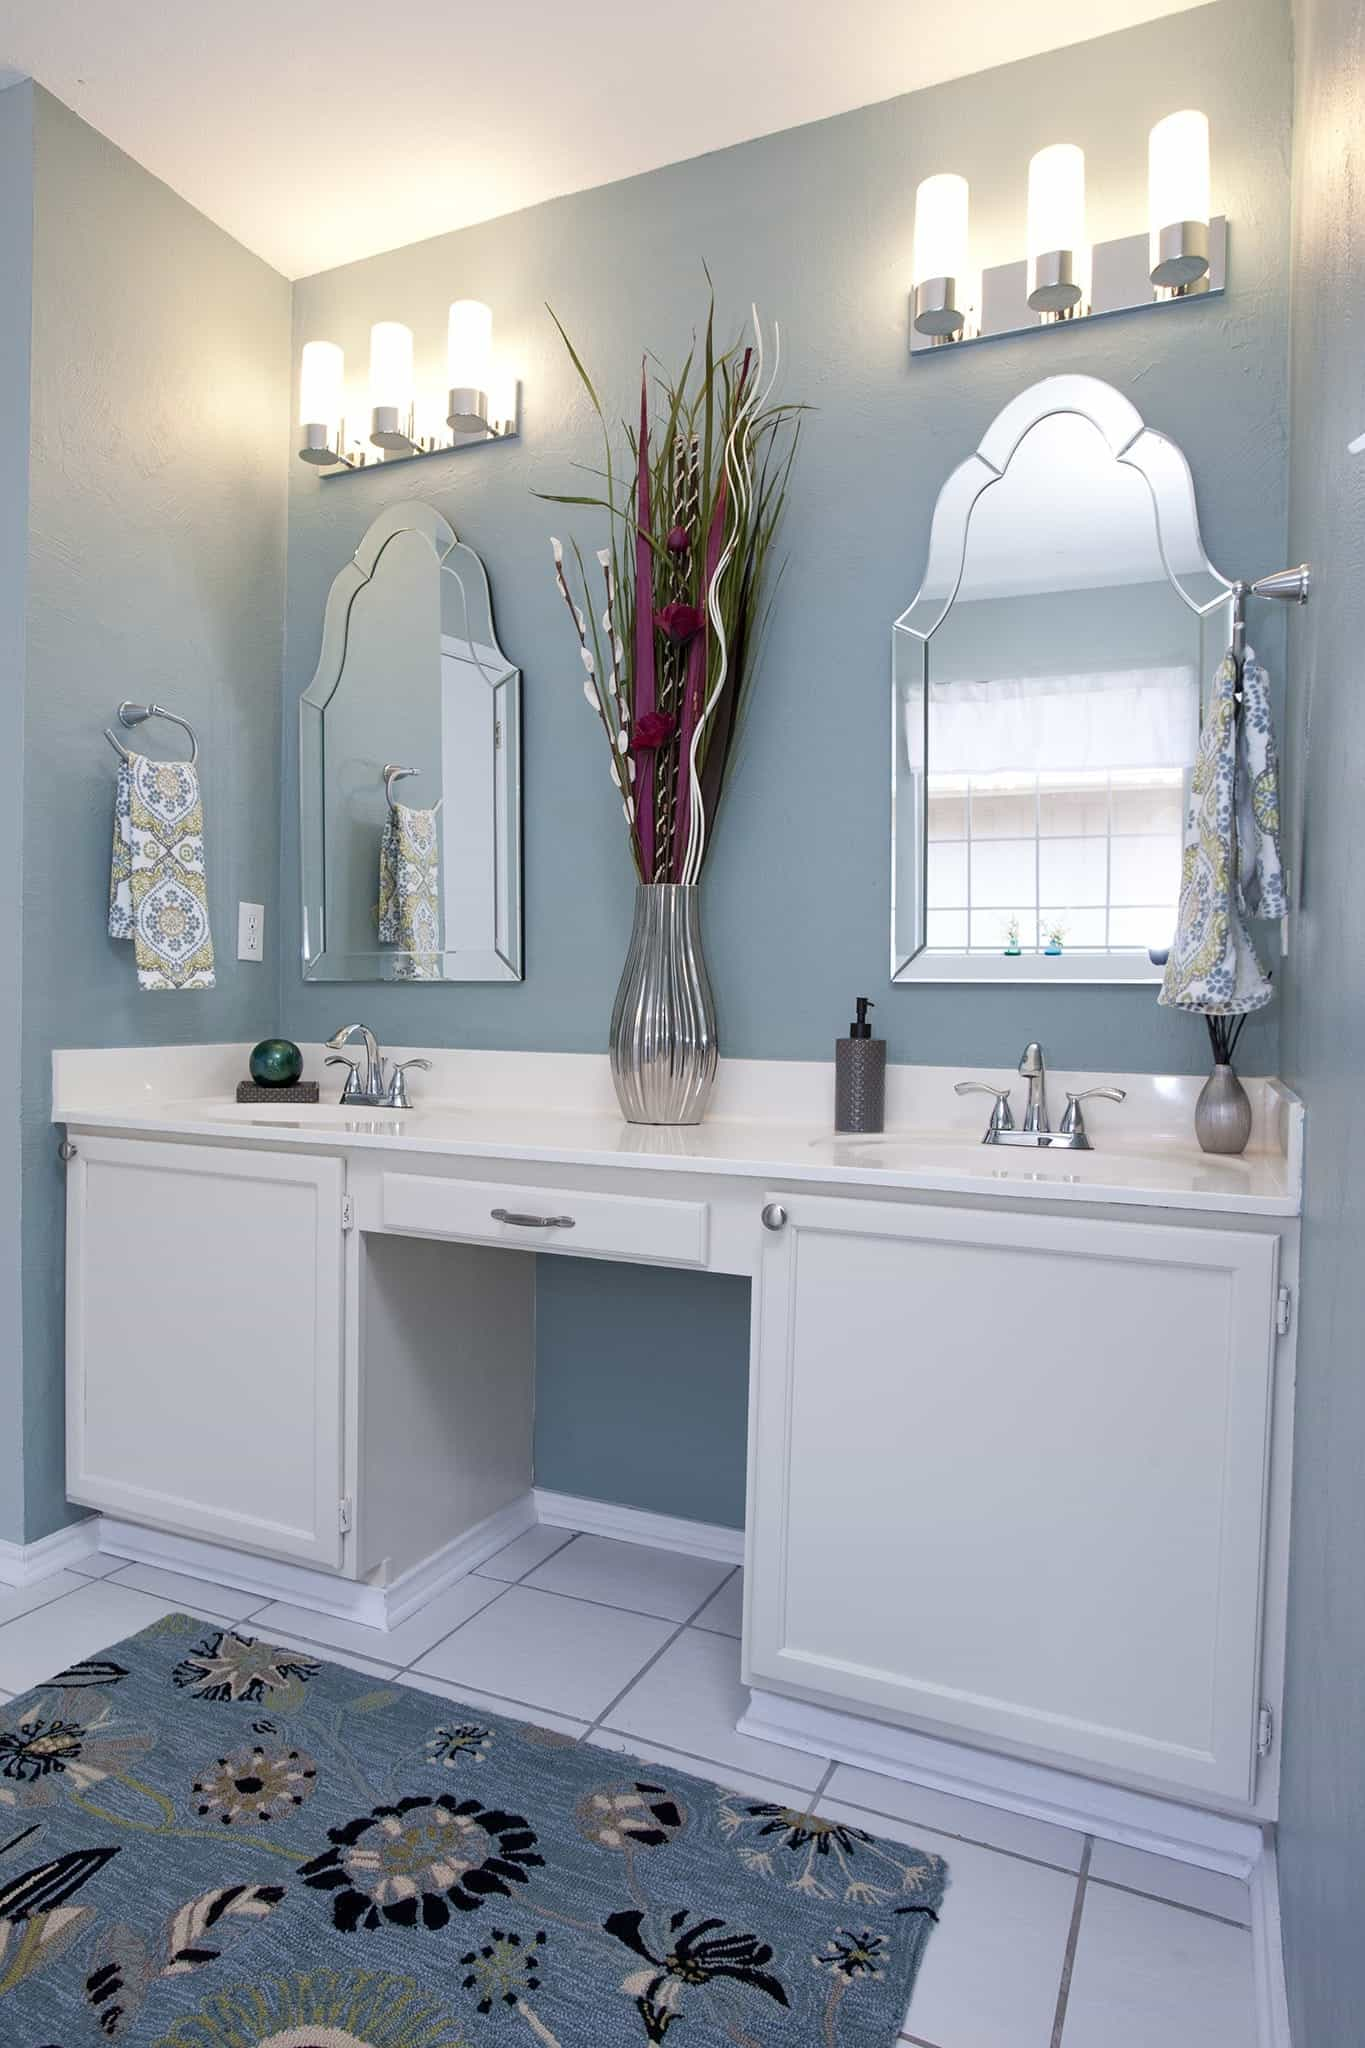 Modern Mirrors And Light Fixtures With Classic Nuance (Image 16 of 20)